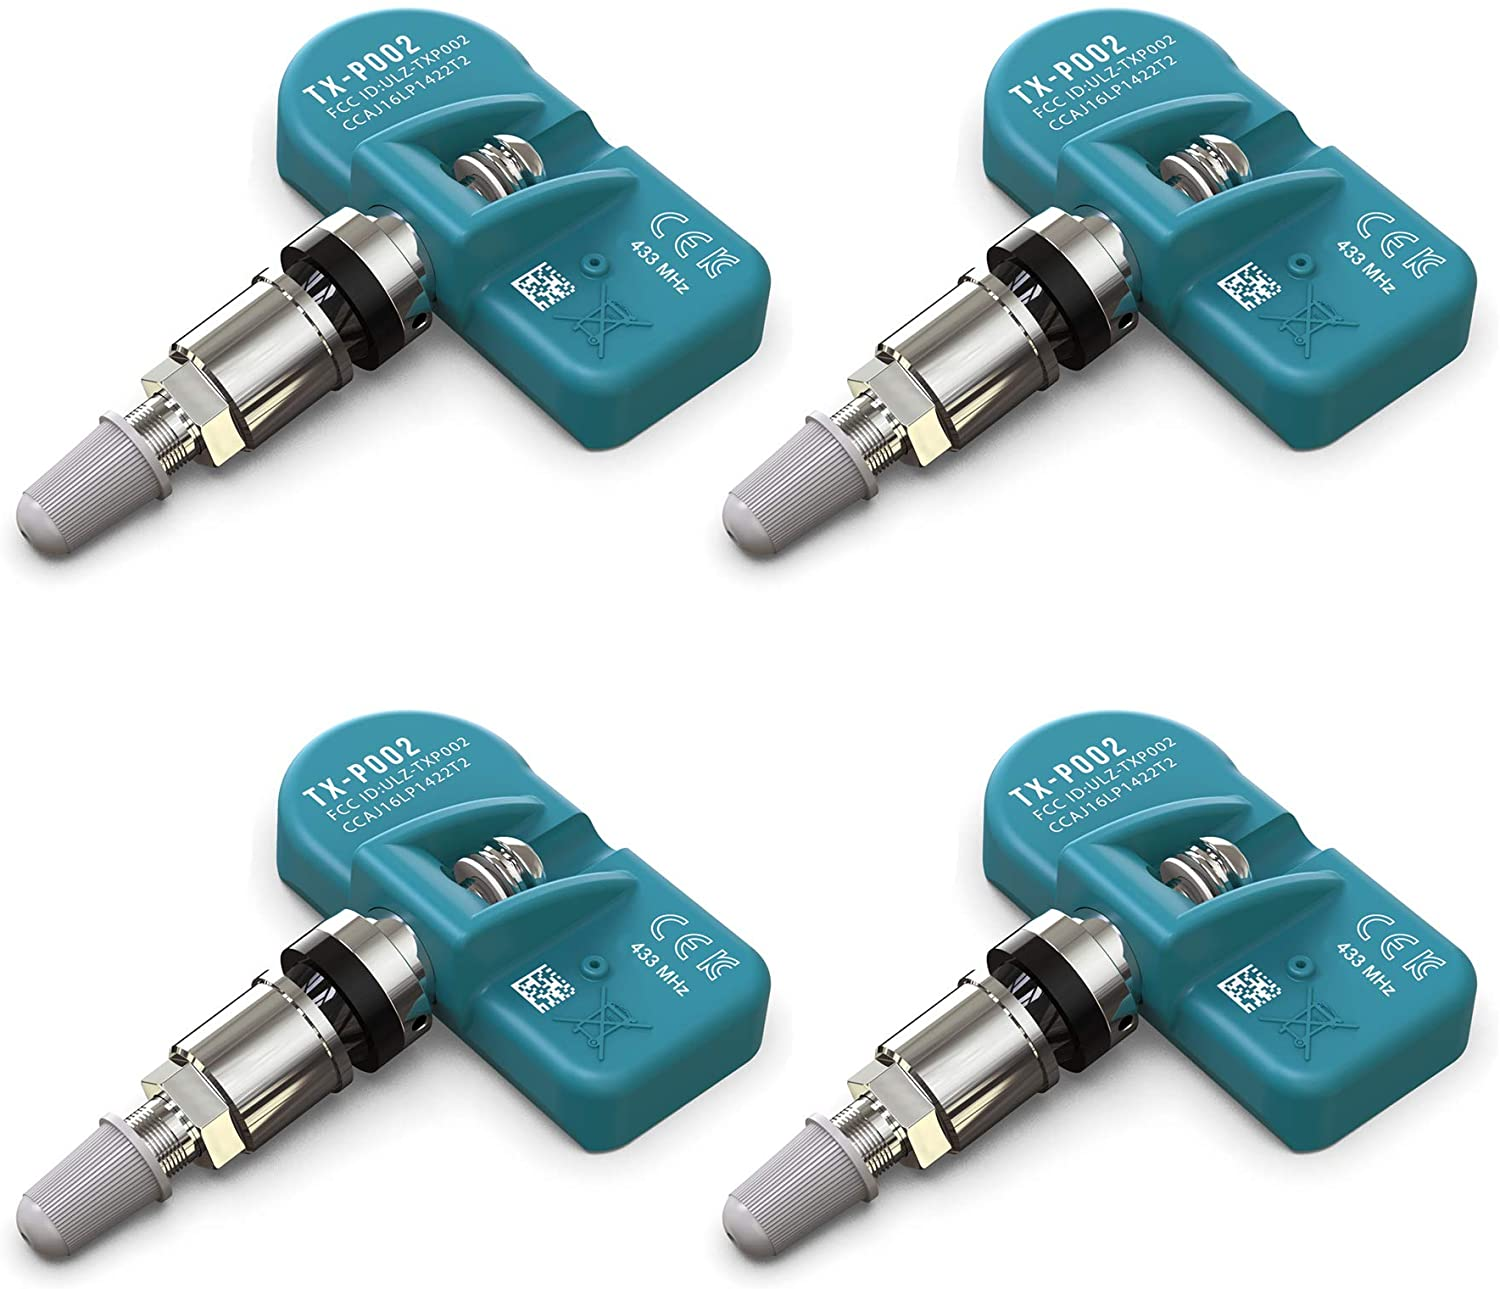 MORESENSOR UNI-Series 433MHz Pre-Programmed TPMS Tire Pressure Sensor 4-Pack | Clamp-in | Compatible with Select 450+ European Brand Models 36236798726 | TX-S003-4